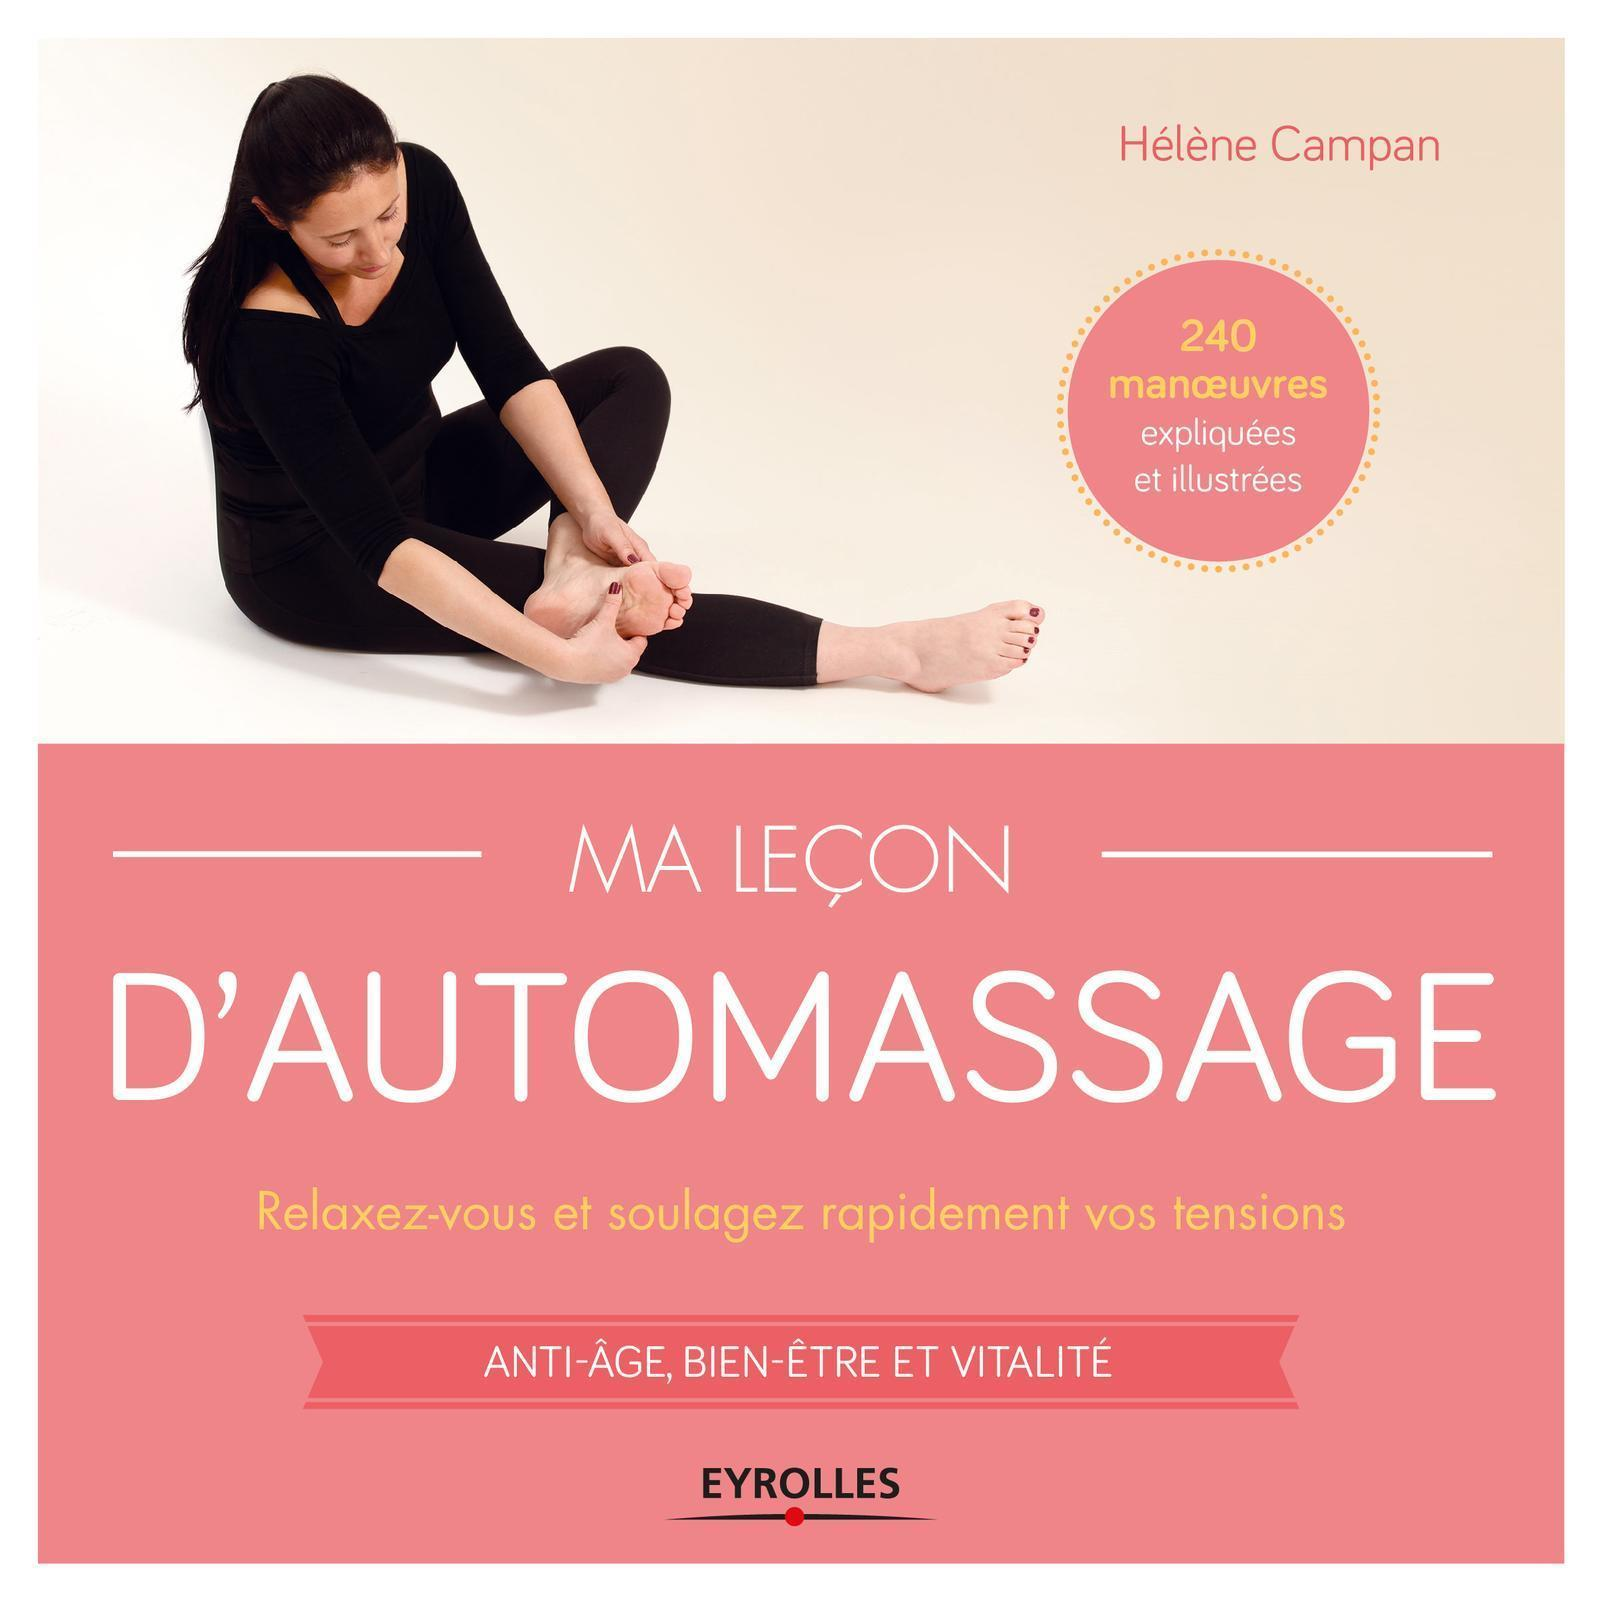 MA LECON D AUTOMASSAGE  240 MANOEUVRES EXPLIQUEES ET ILLUSTREES